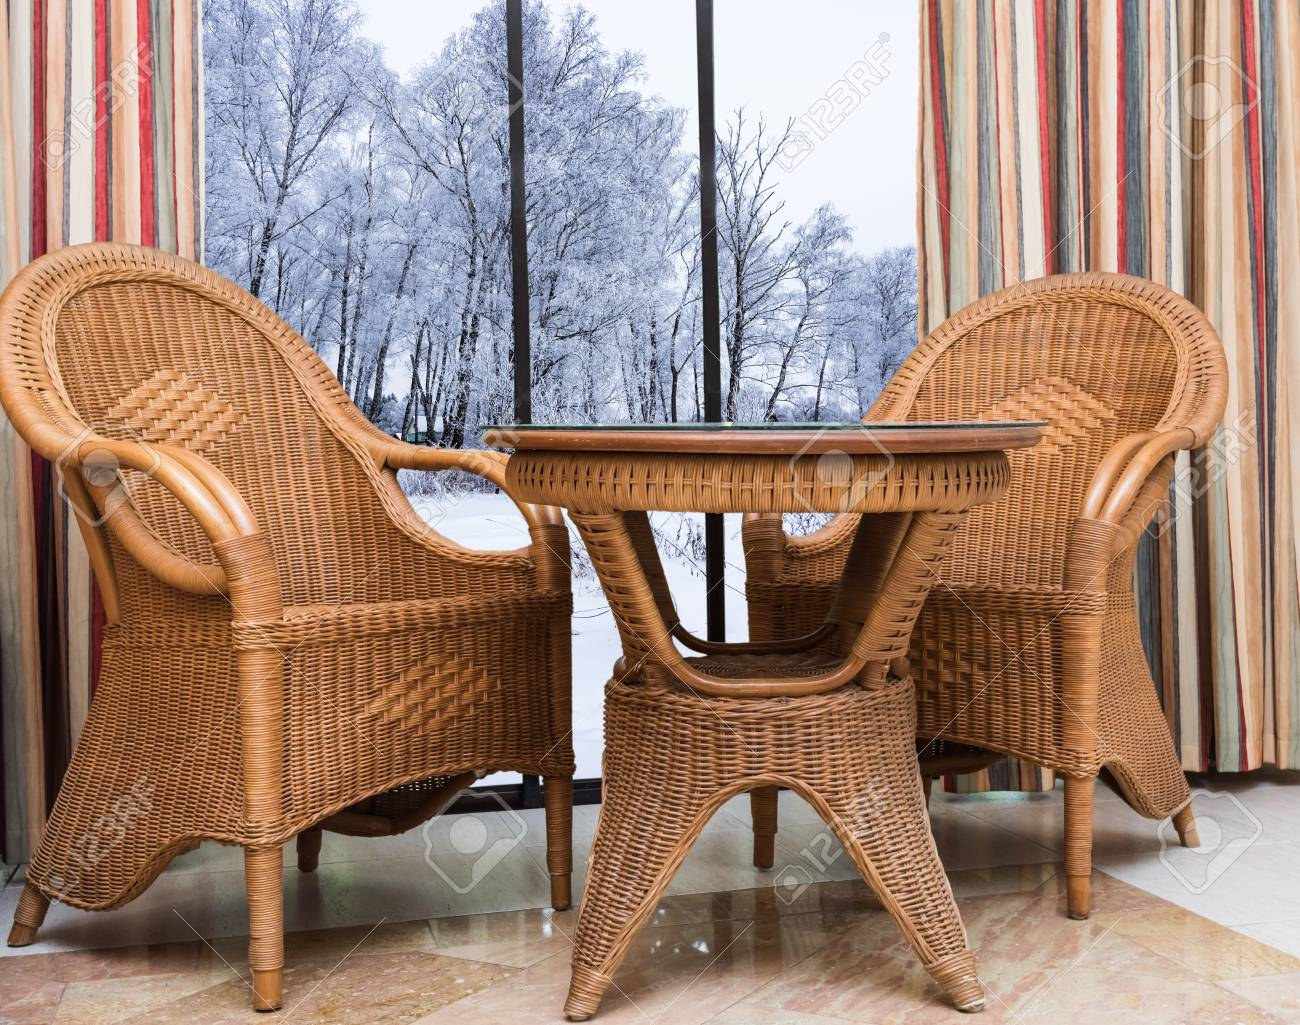 Table With Two Chairs Wicker Furniture Rattan Table Two Chairs Near The Window With